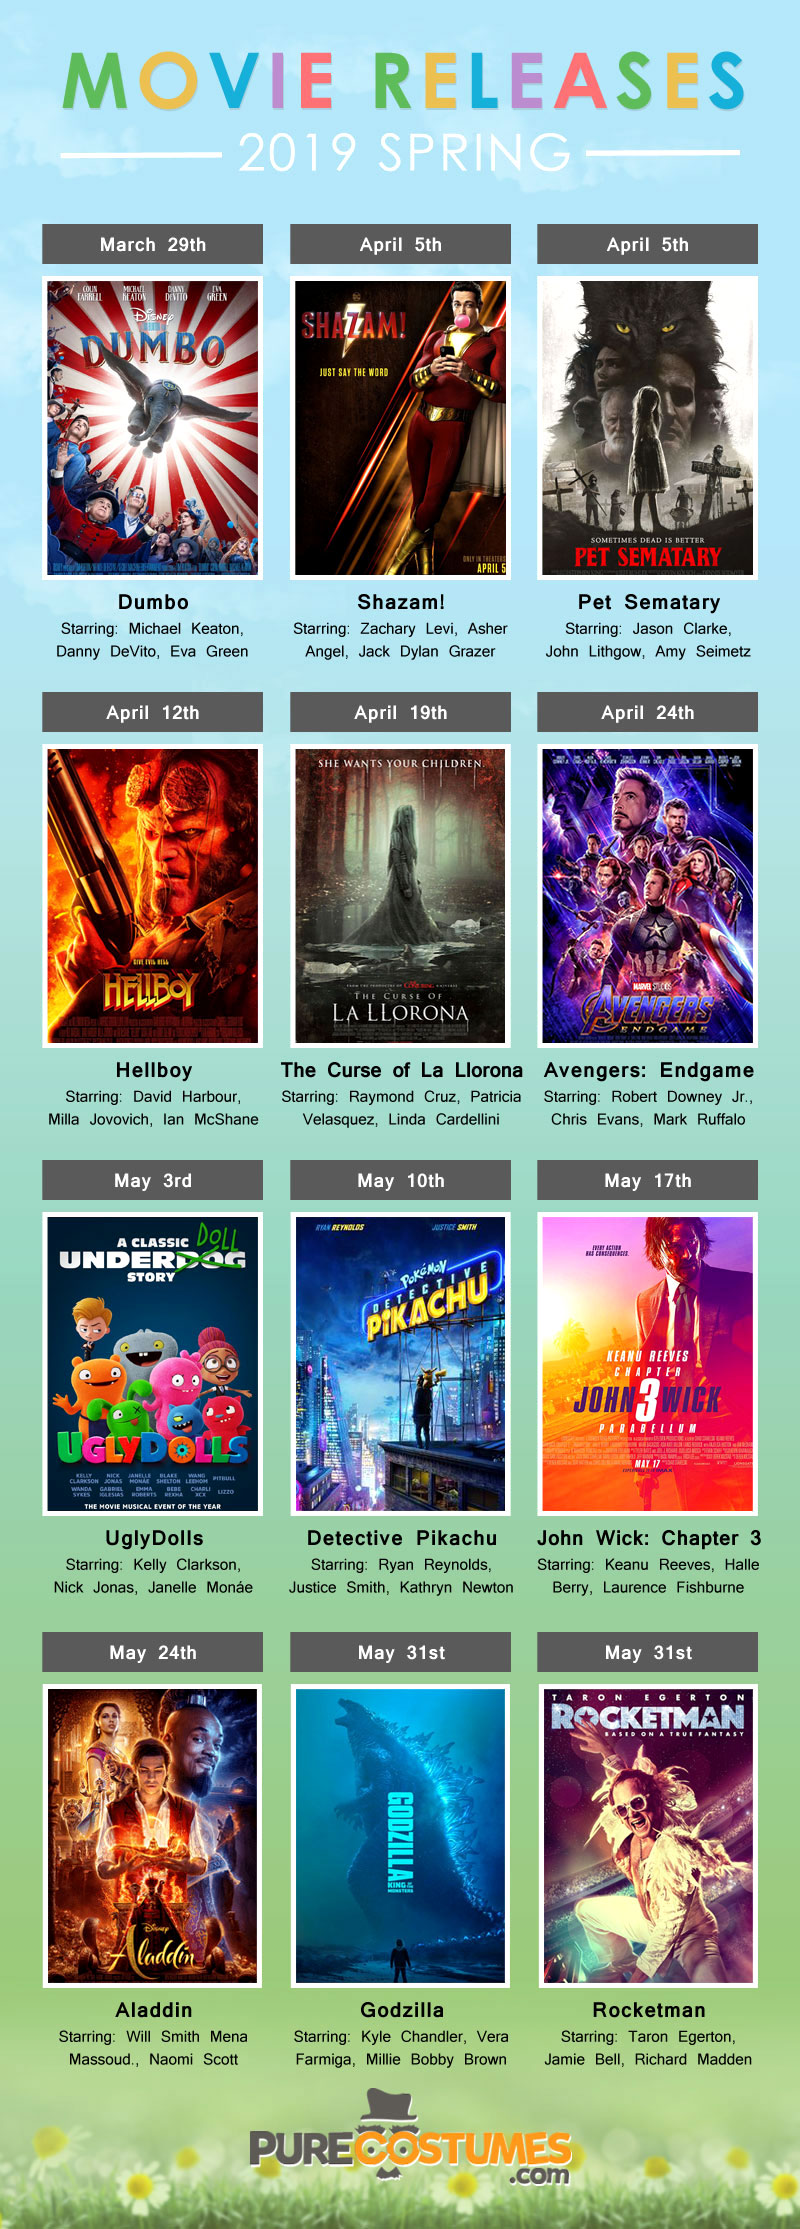 Spring 2019 Movie Releases Infographic